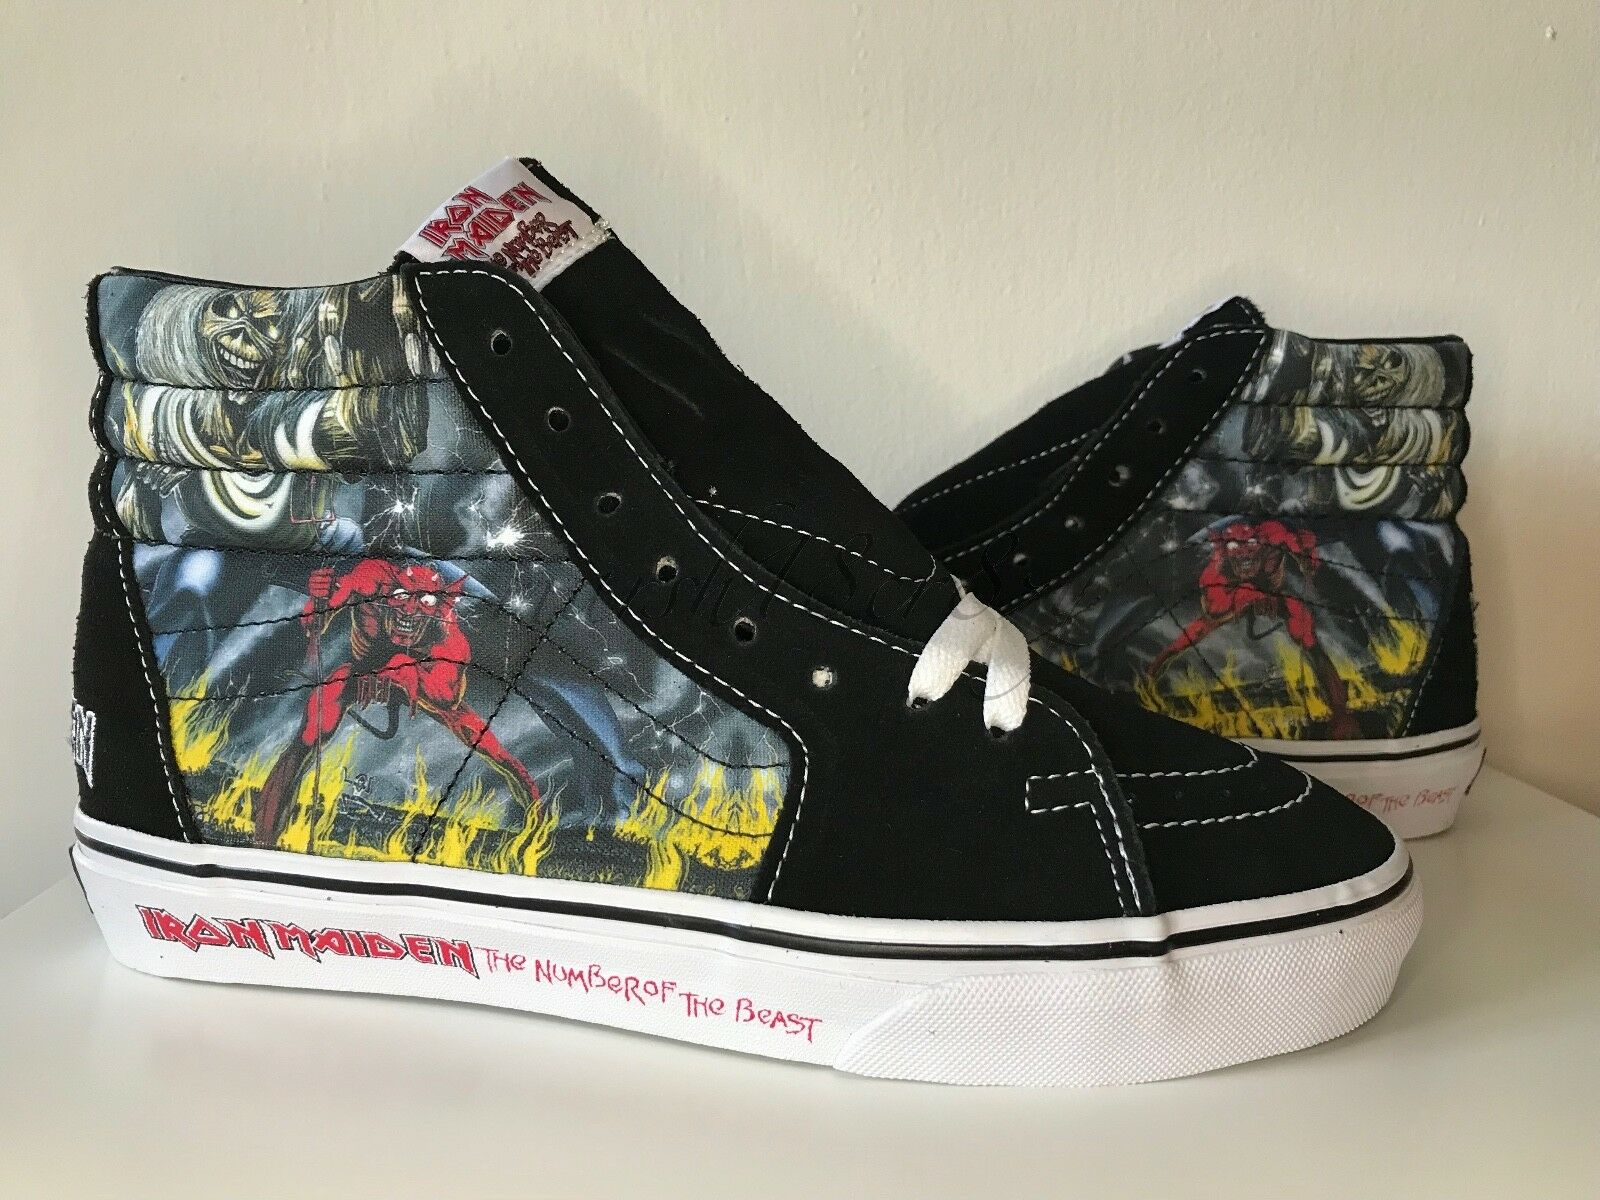 Neuf Vans X Iron Maiden  Number Of The Beast  sz. 7  RARE hard to find